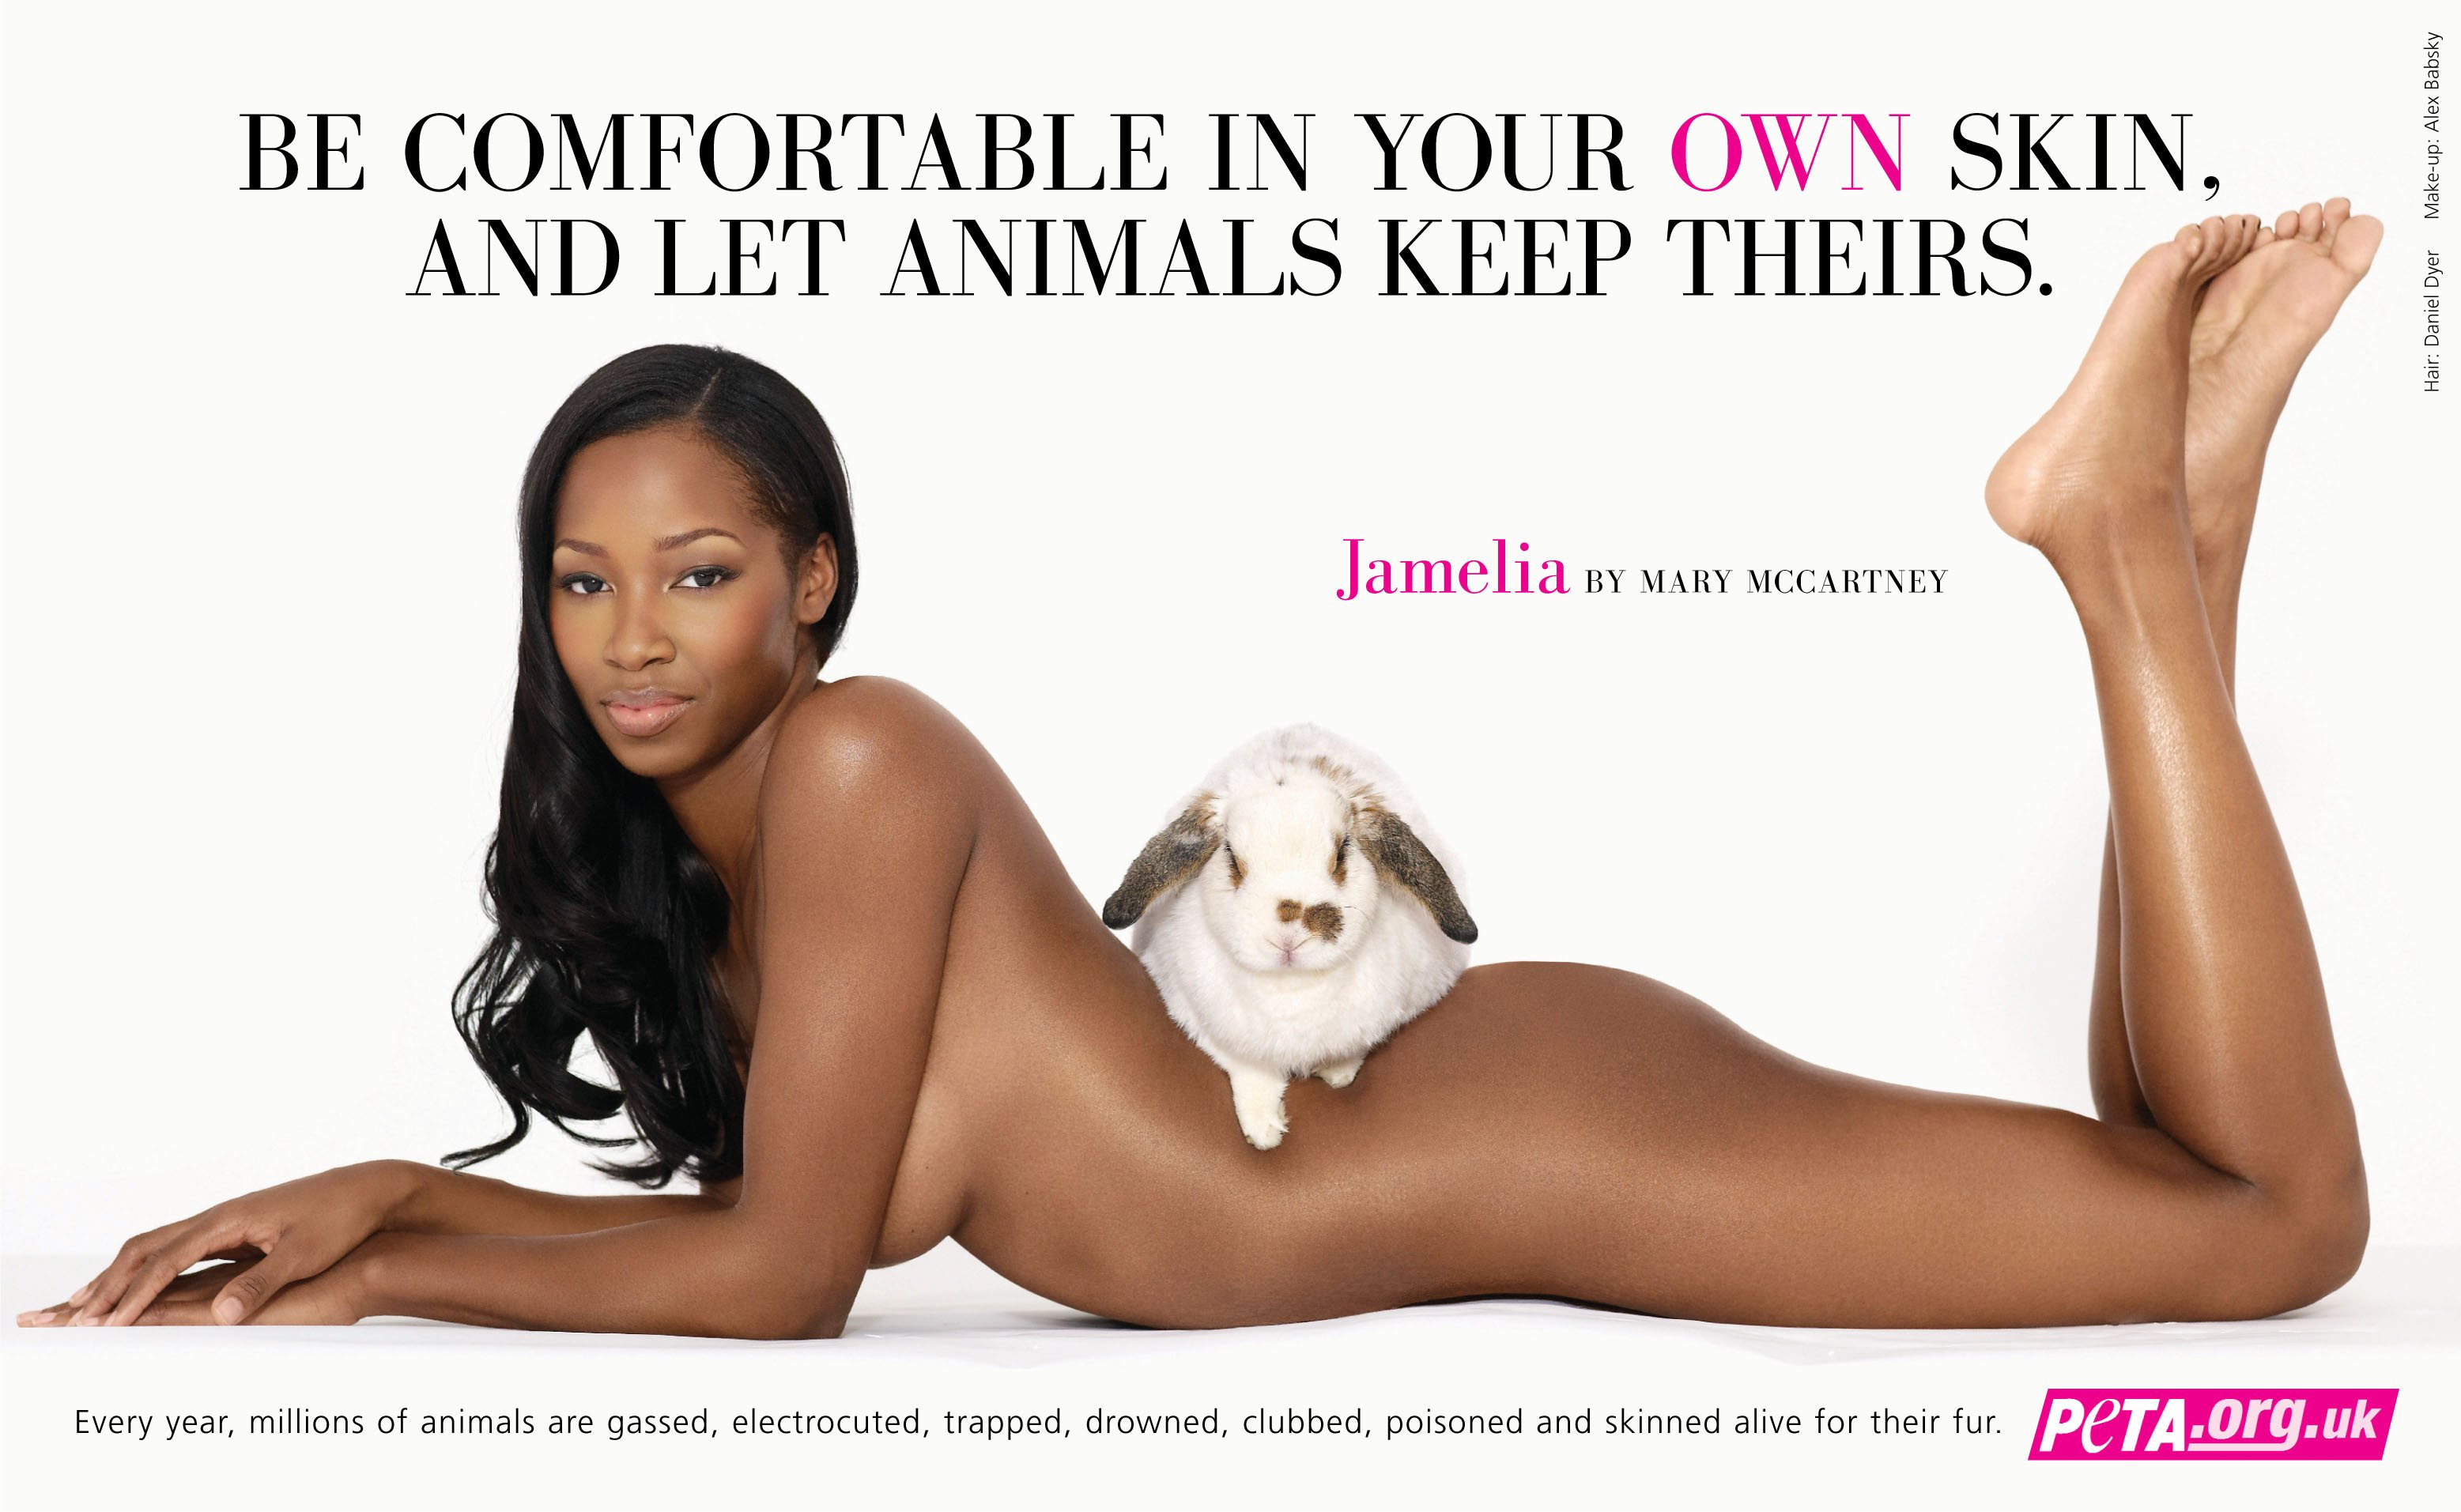 Jamelia is more comfortable in her own skin